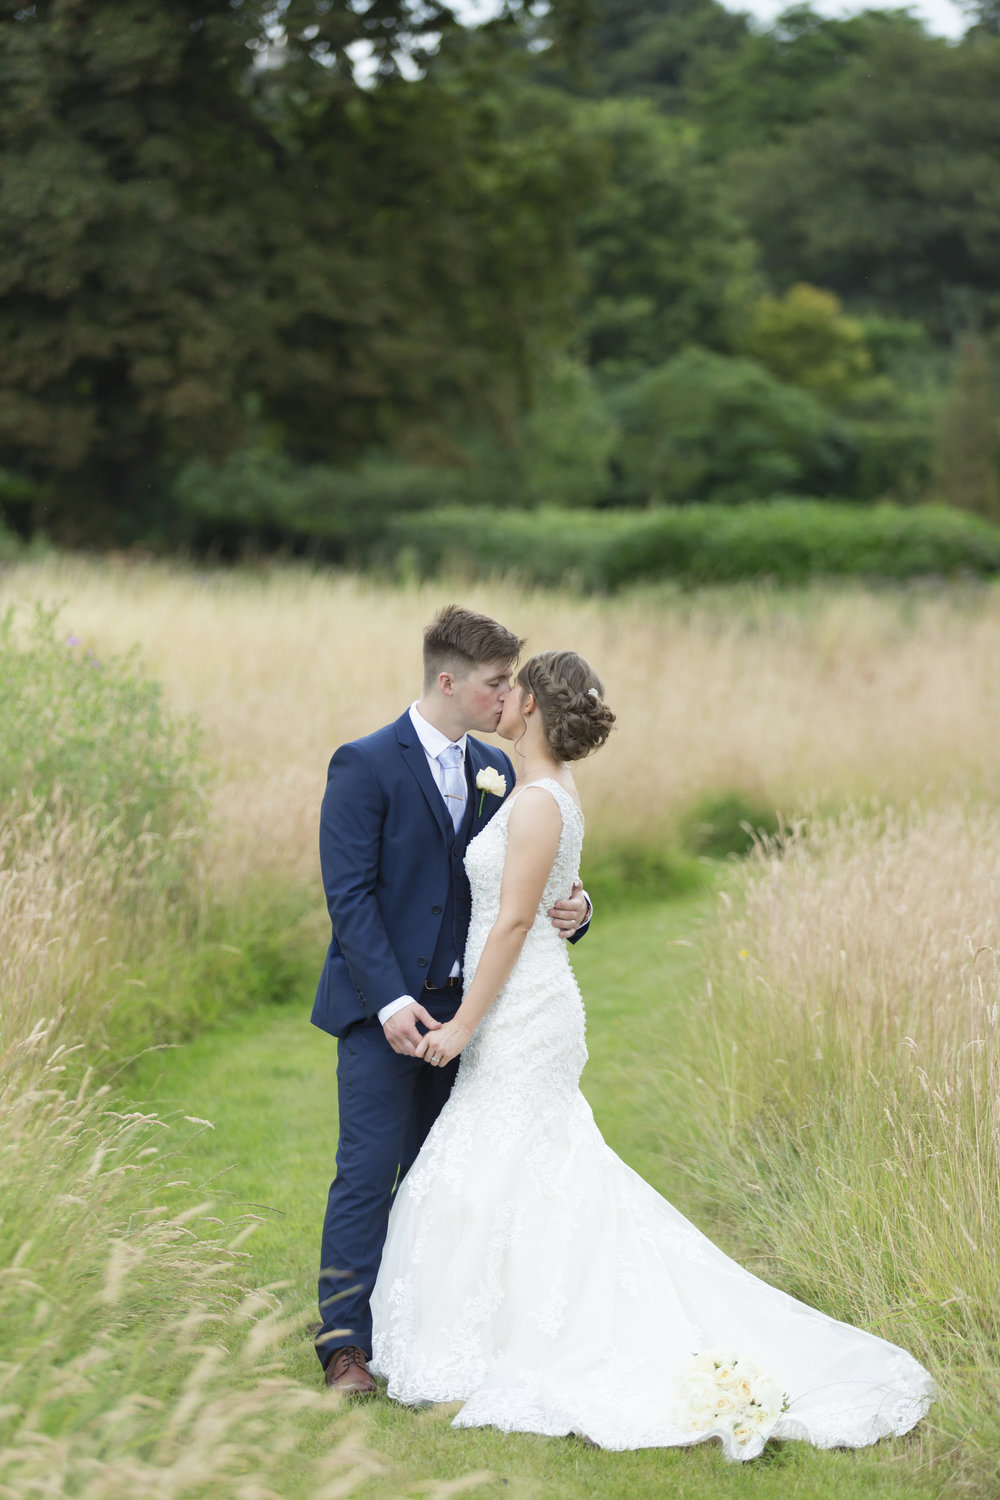 larafrostphotography_cusworthhall_doncaster_southyorkshire_karlandlucy_weddingphotography_photographer_yorkshire_bride_groom-51.jpg